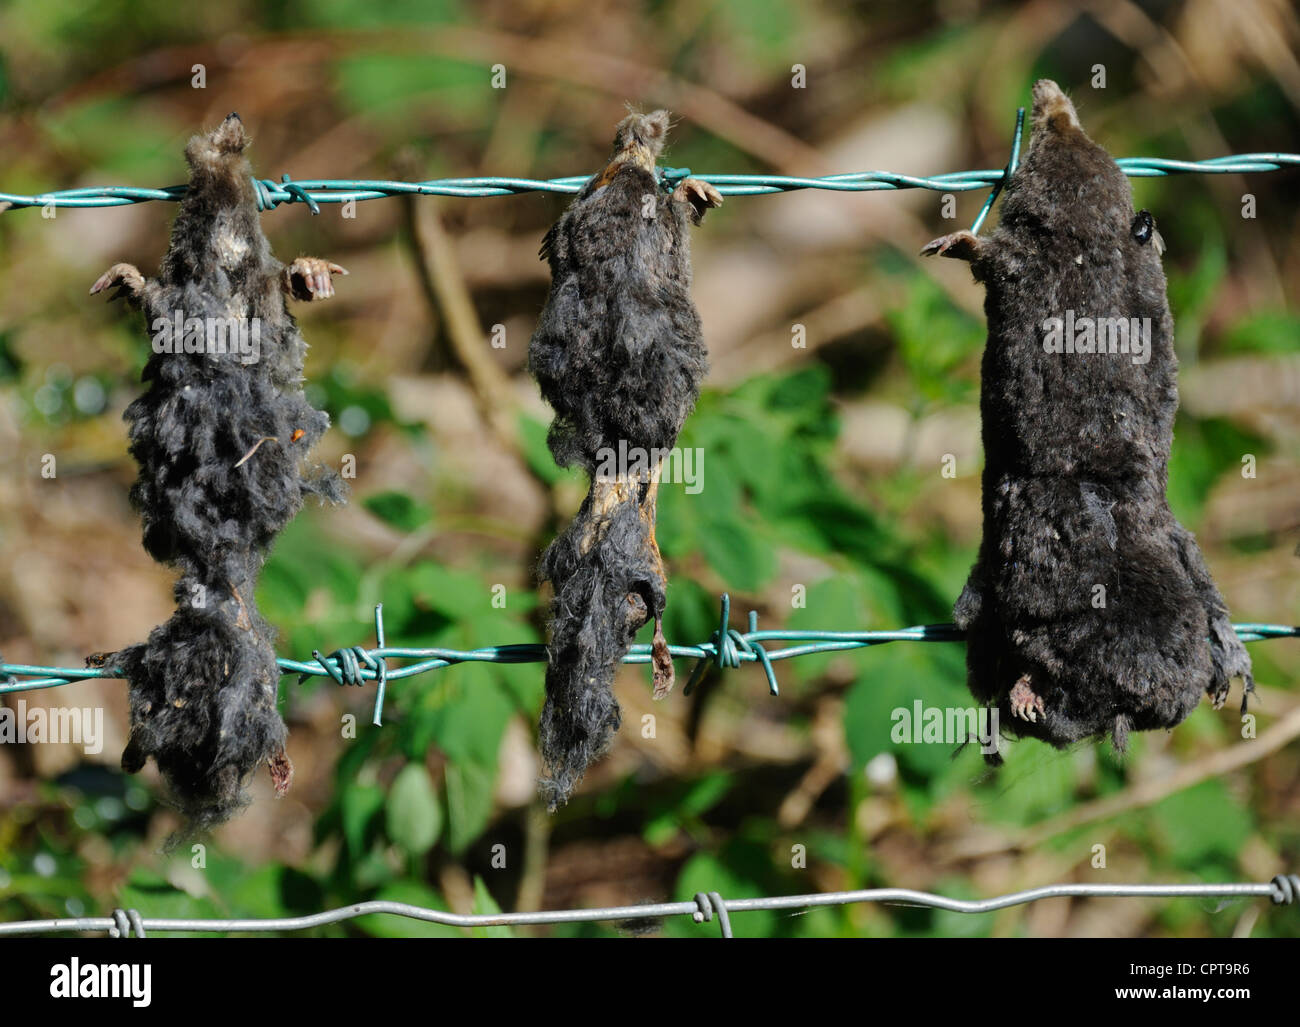 Dead moles on barbed wire fence. Winster Valley, Lake District National Park, Cumbria, England, United Kingdom, - Stock Image